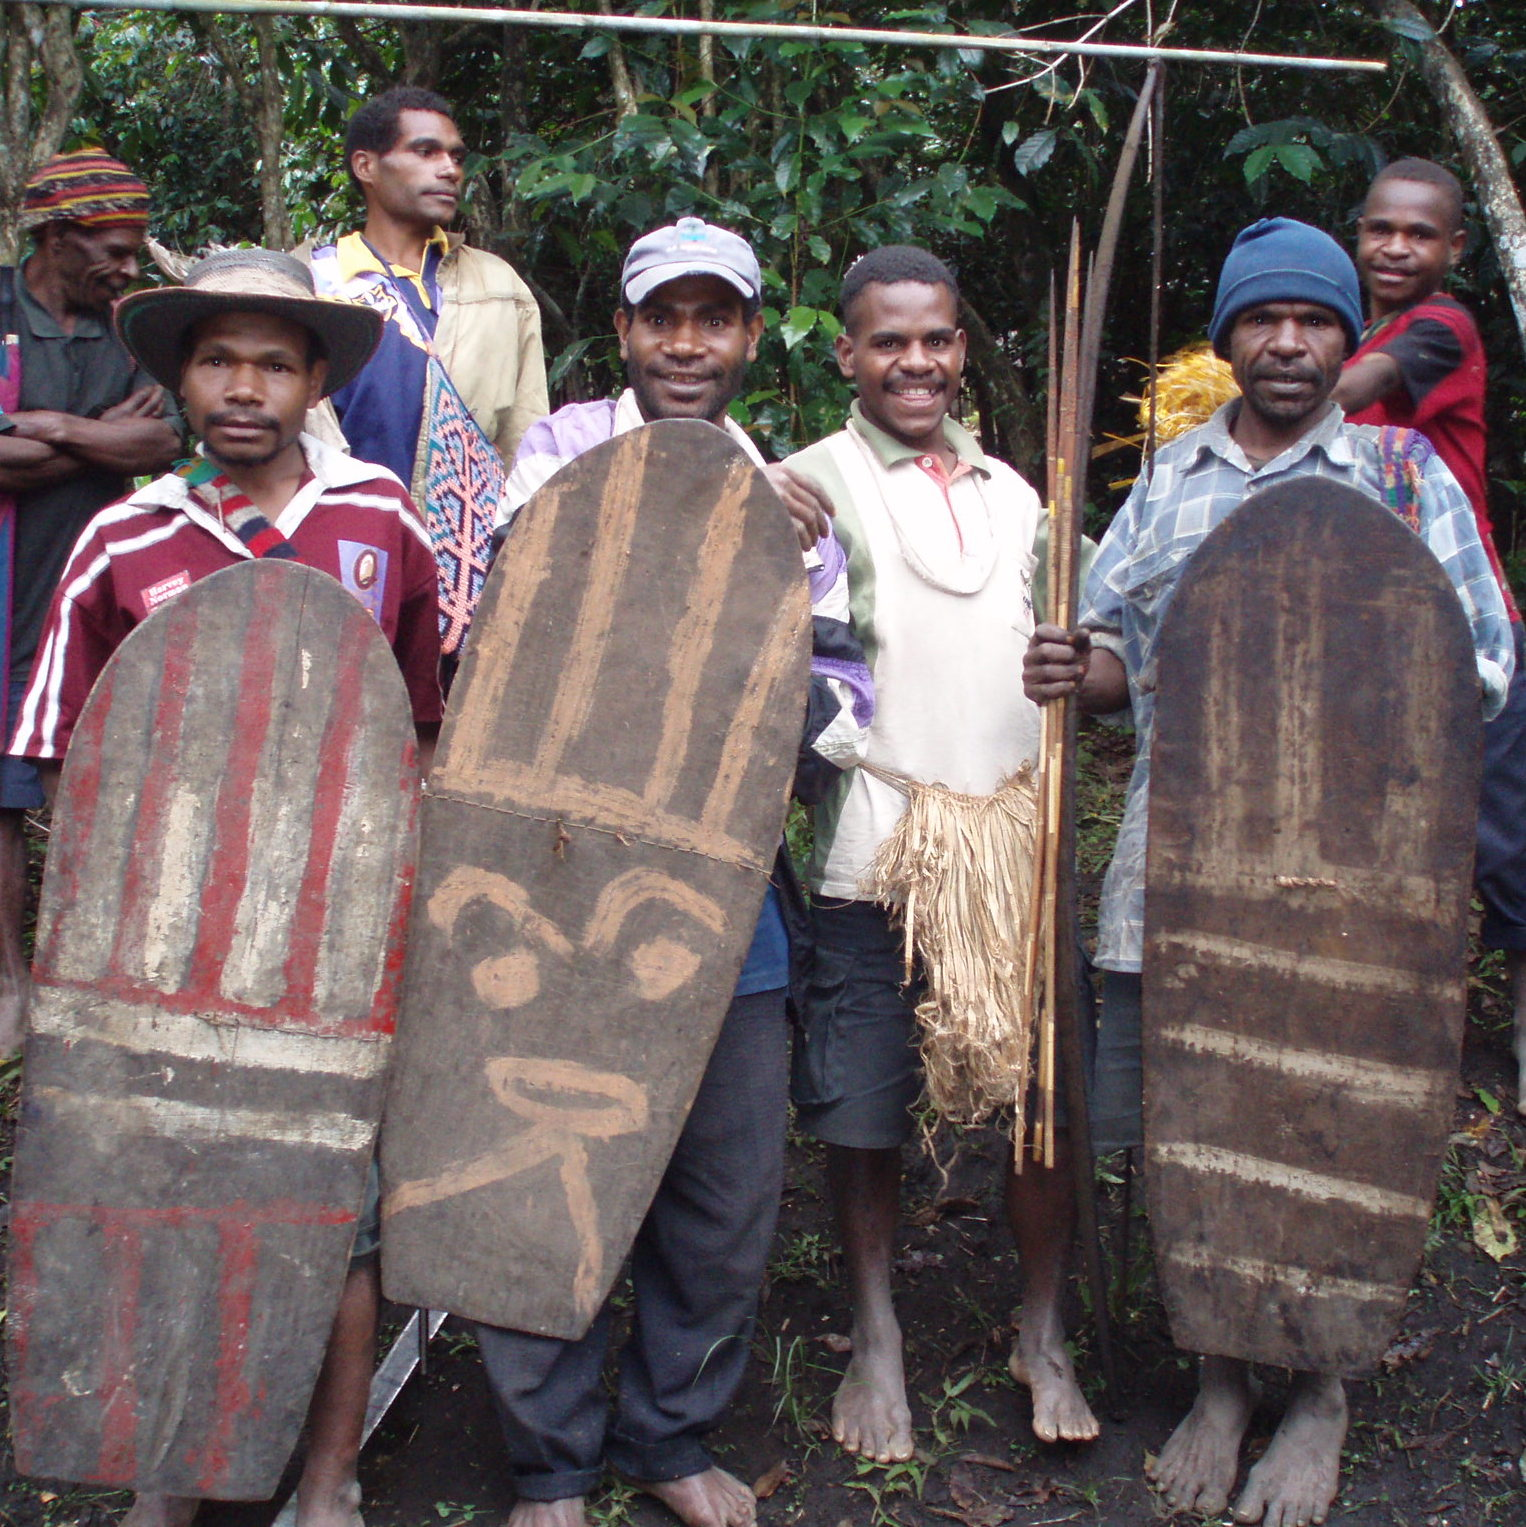 Menyamya men with shields, New Guinea Art, Oceanic Art, South Pacific Art, Tribal Art